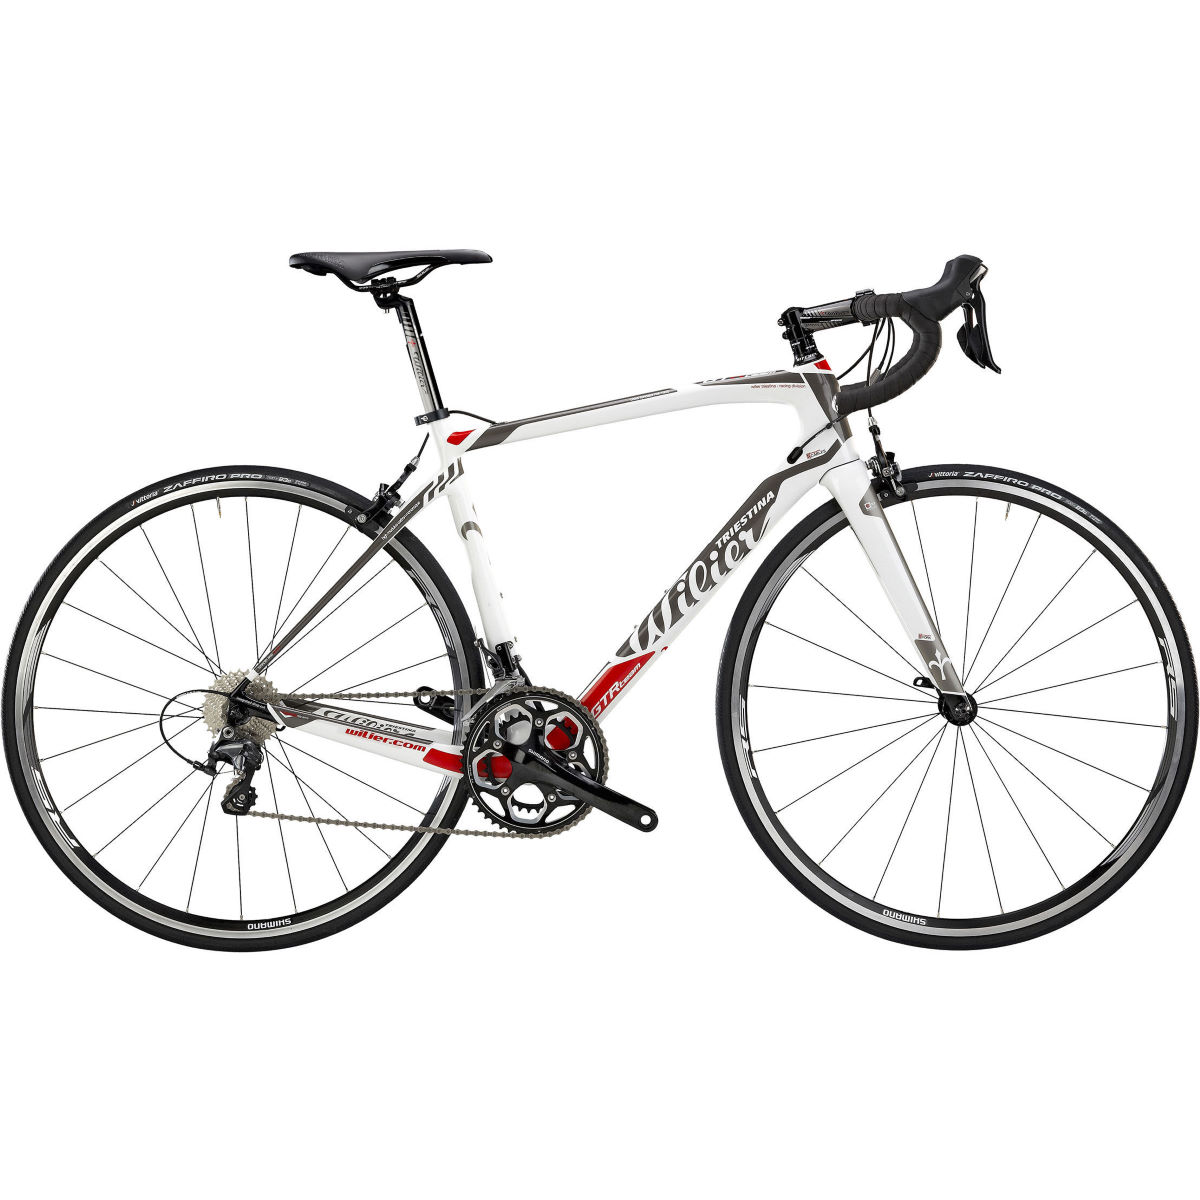 Vélo de route Wilier GTR SL Endurance (105, 2017) - XL Stock Bike